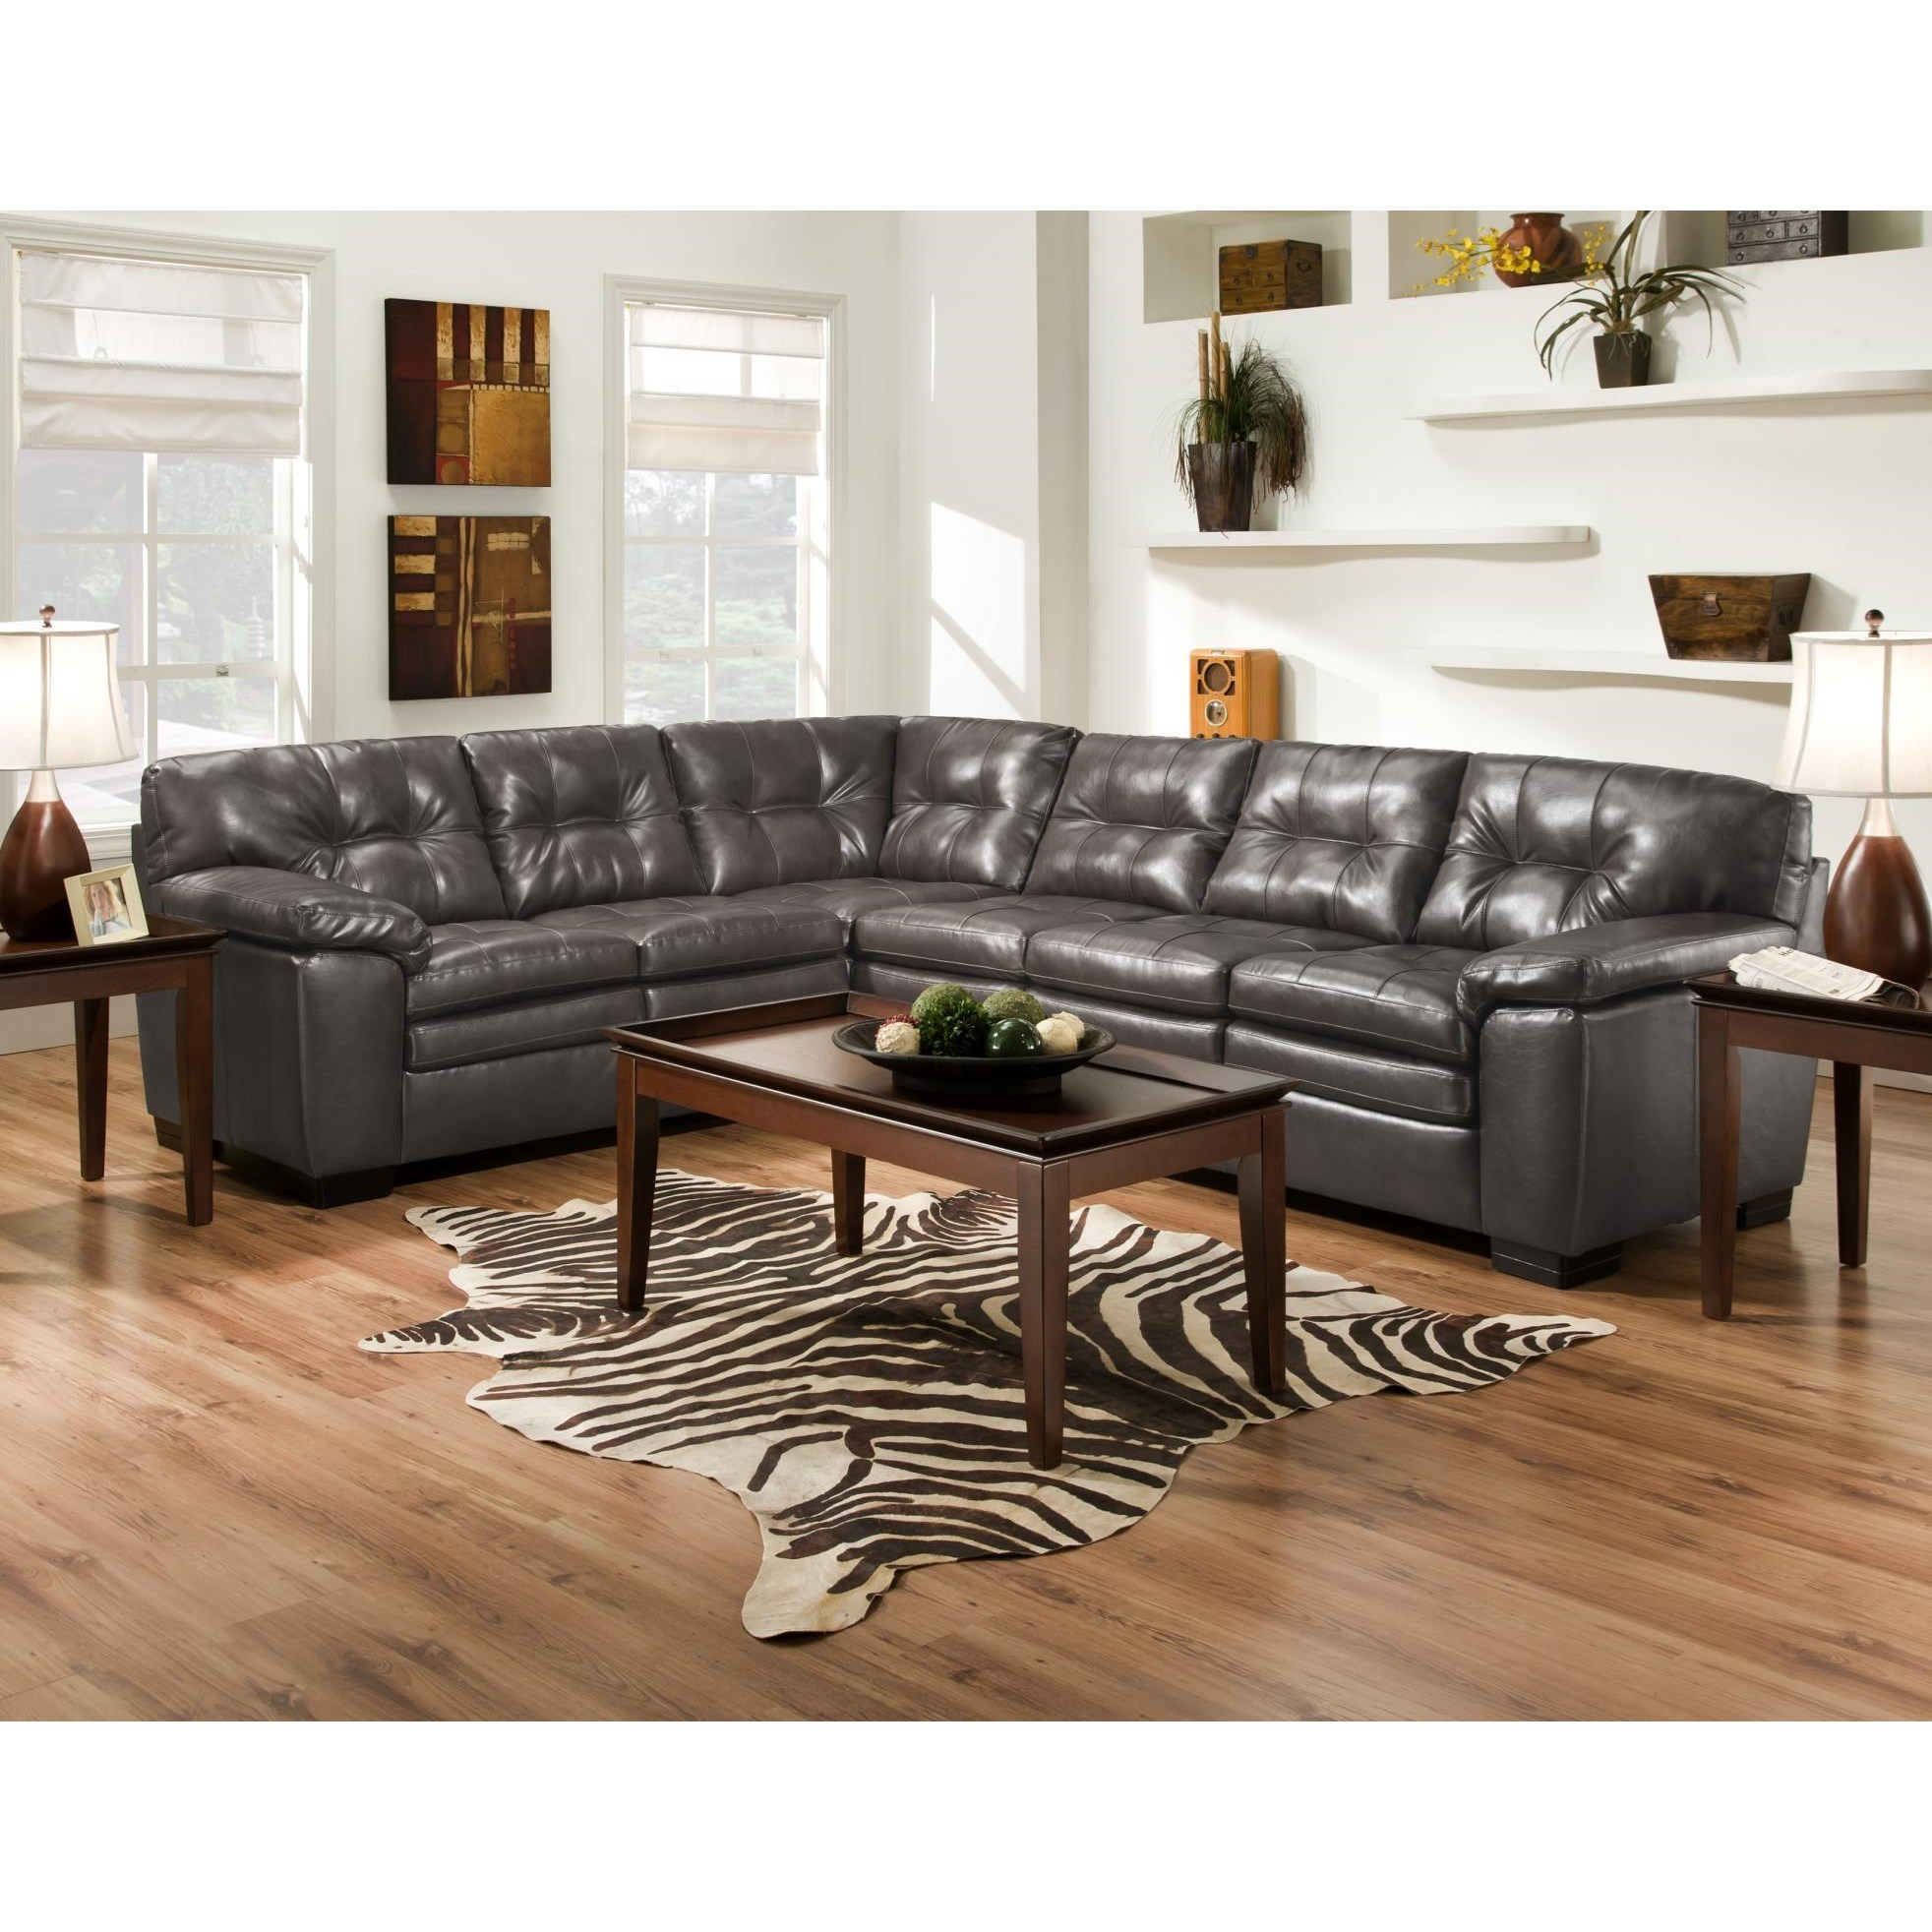 782 2 Pc Sectional Sofa by Albany at A1 Furniture & Mattress